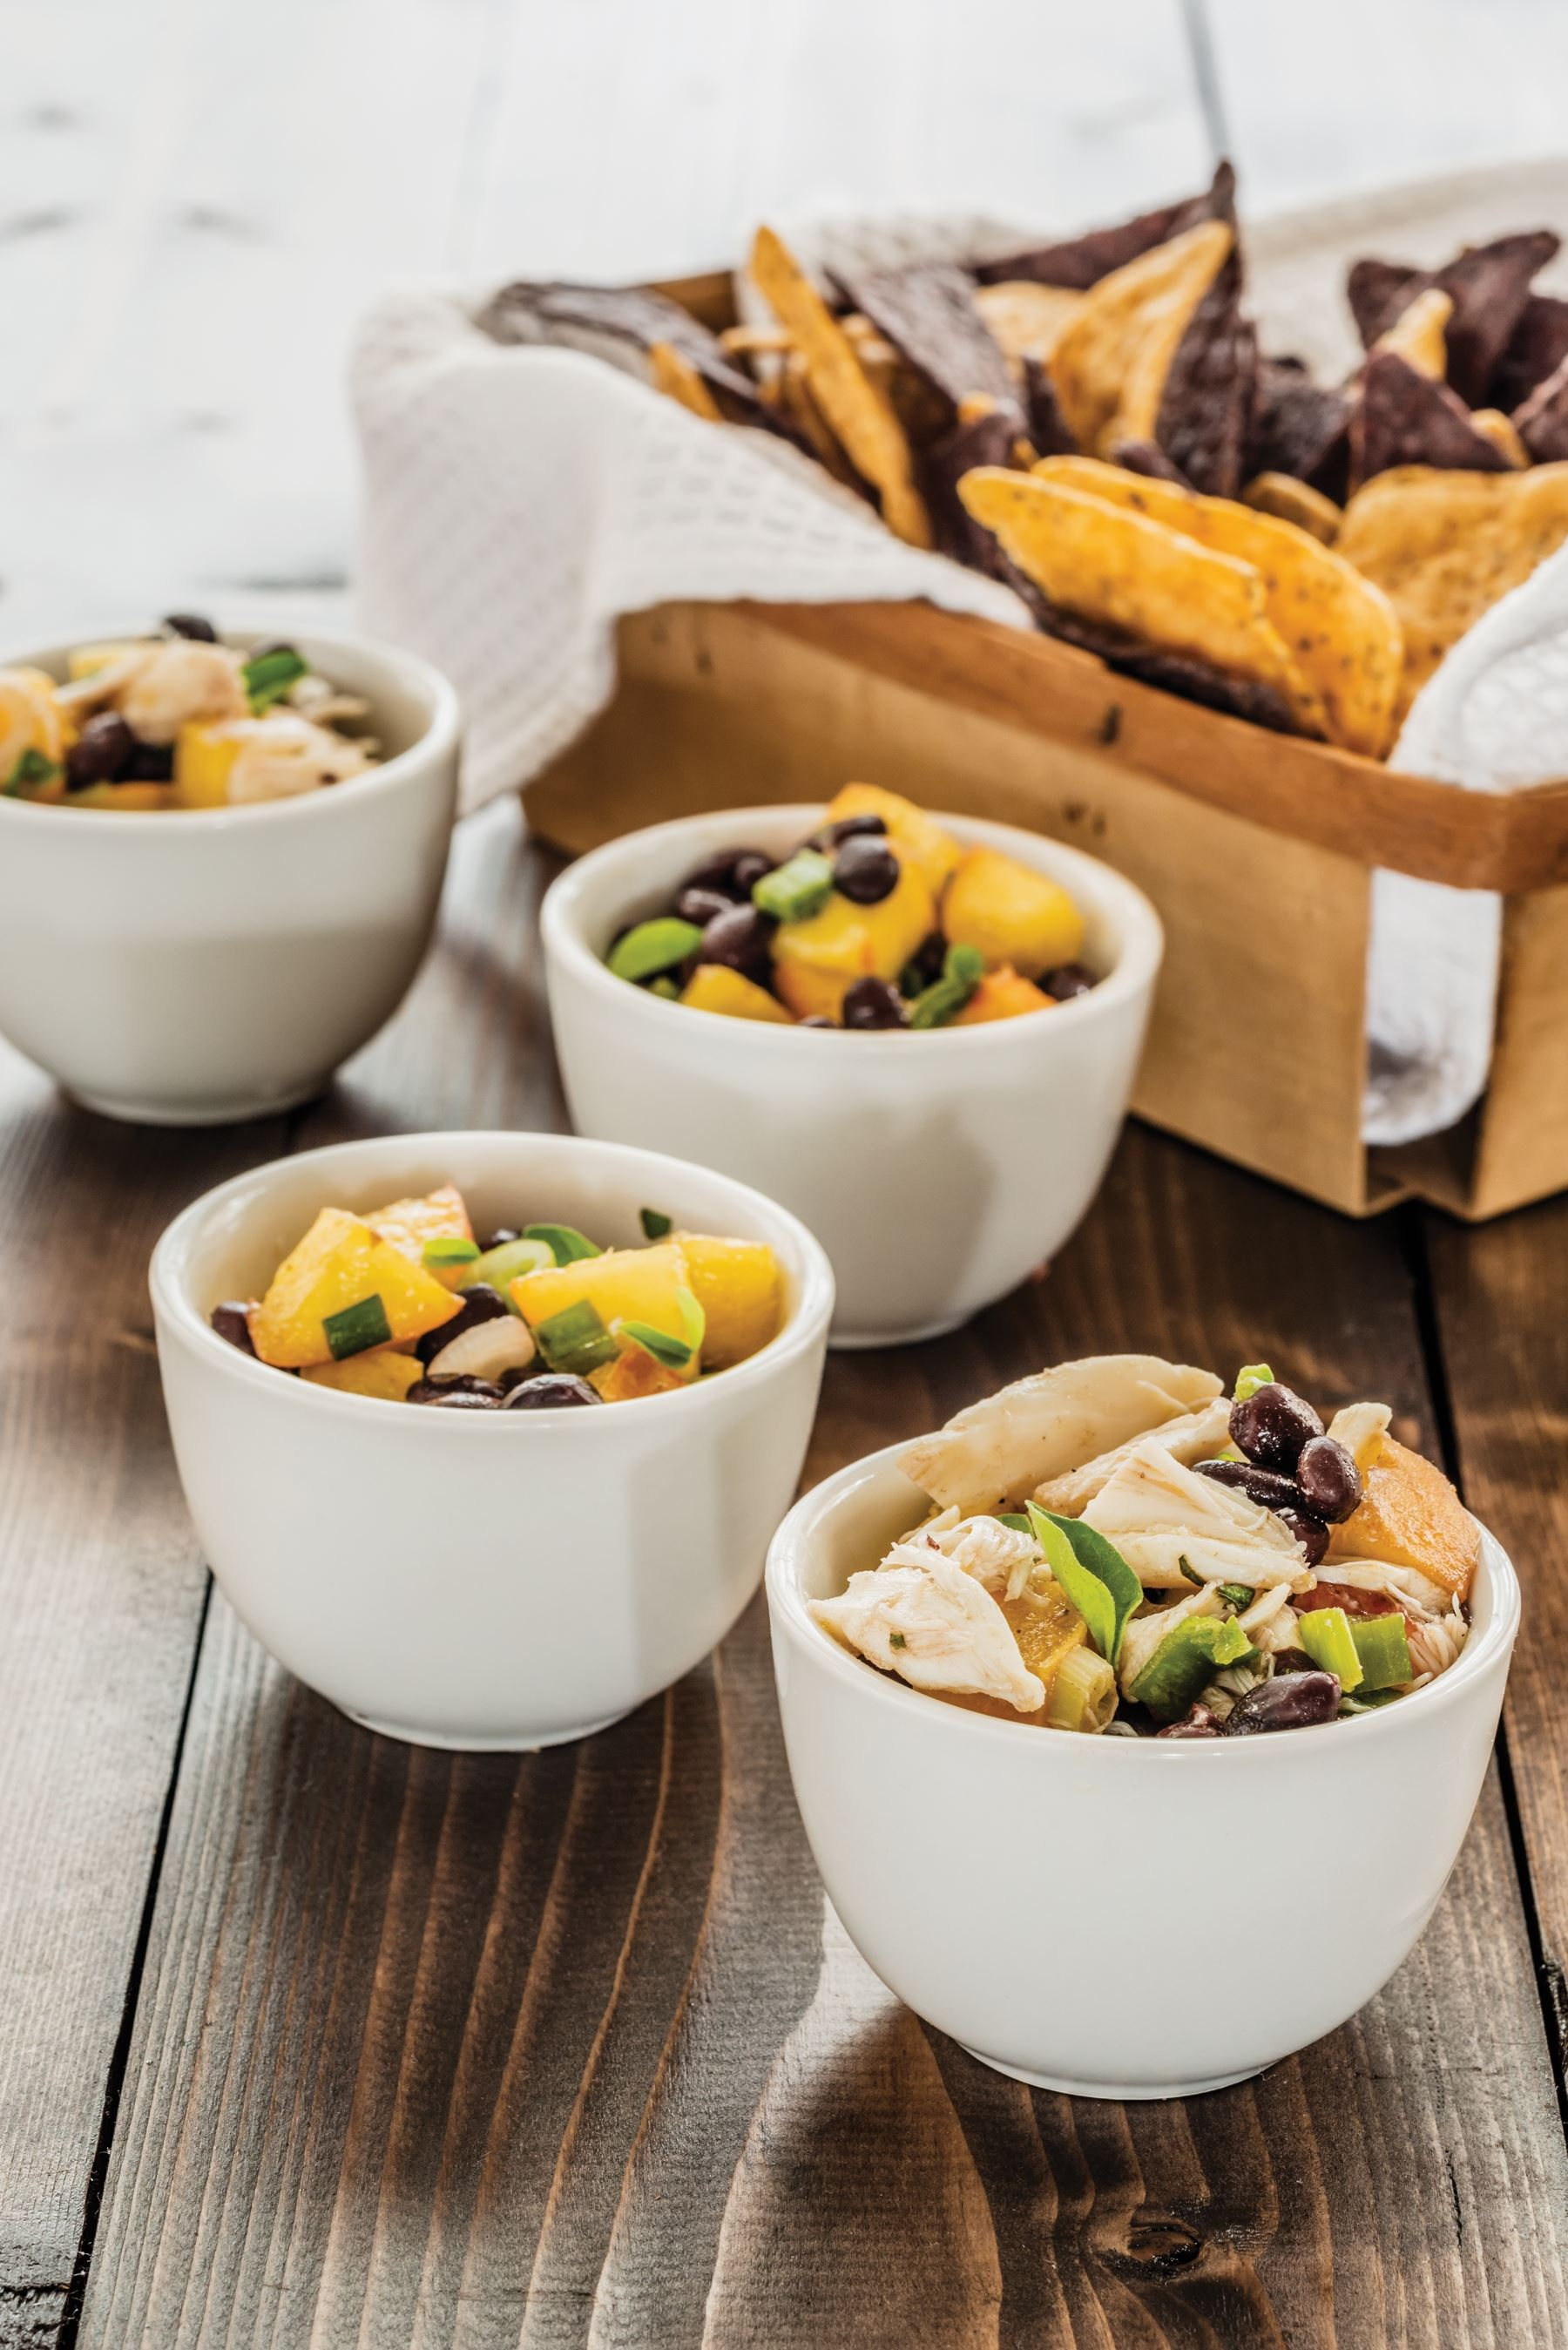 Peach_and_Black_Bean_Salsa_with_Chips_The_With_or_Without_Meat_Cookbook